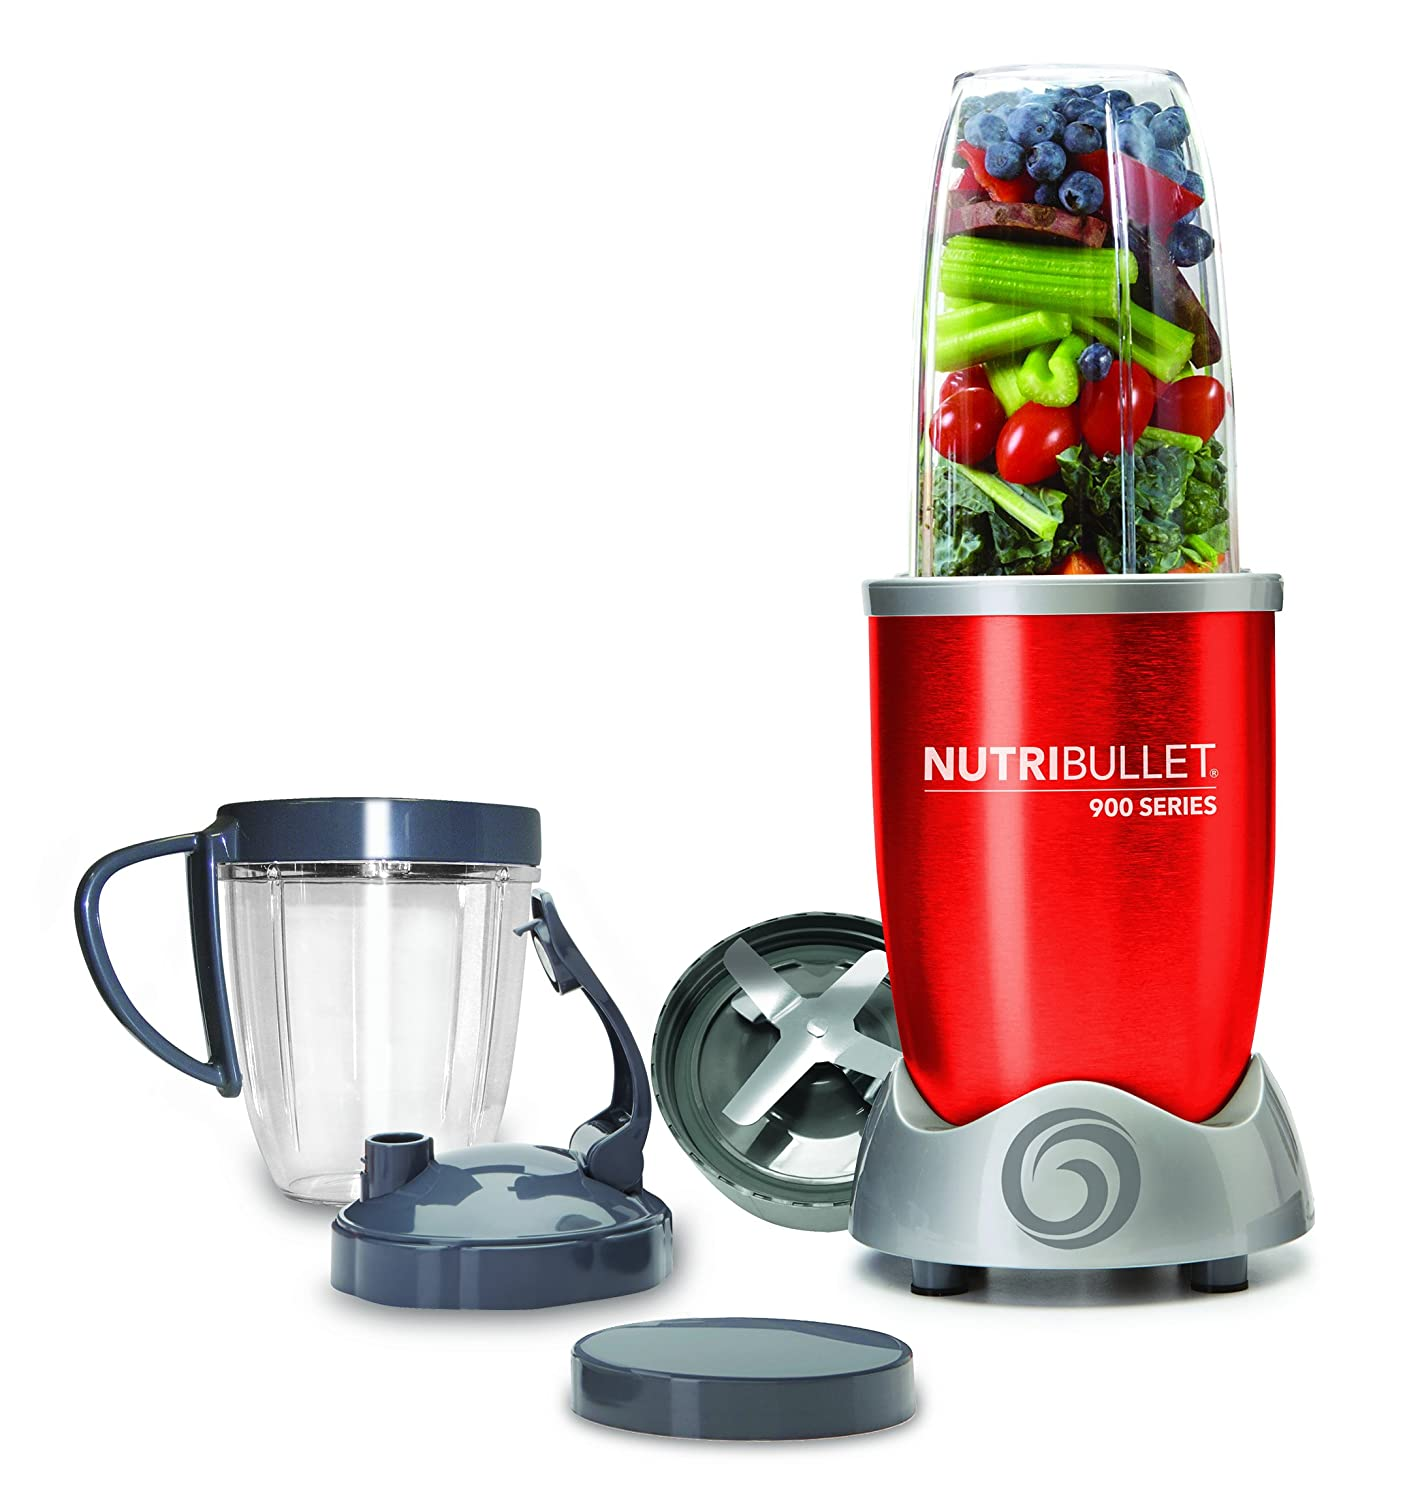 NutriBullet NB9-0928-R - Extractor de nutrientes original con recetario en Español, 900 W, 25.000 rpm, color rojo: Amazon.es: Hogar